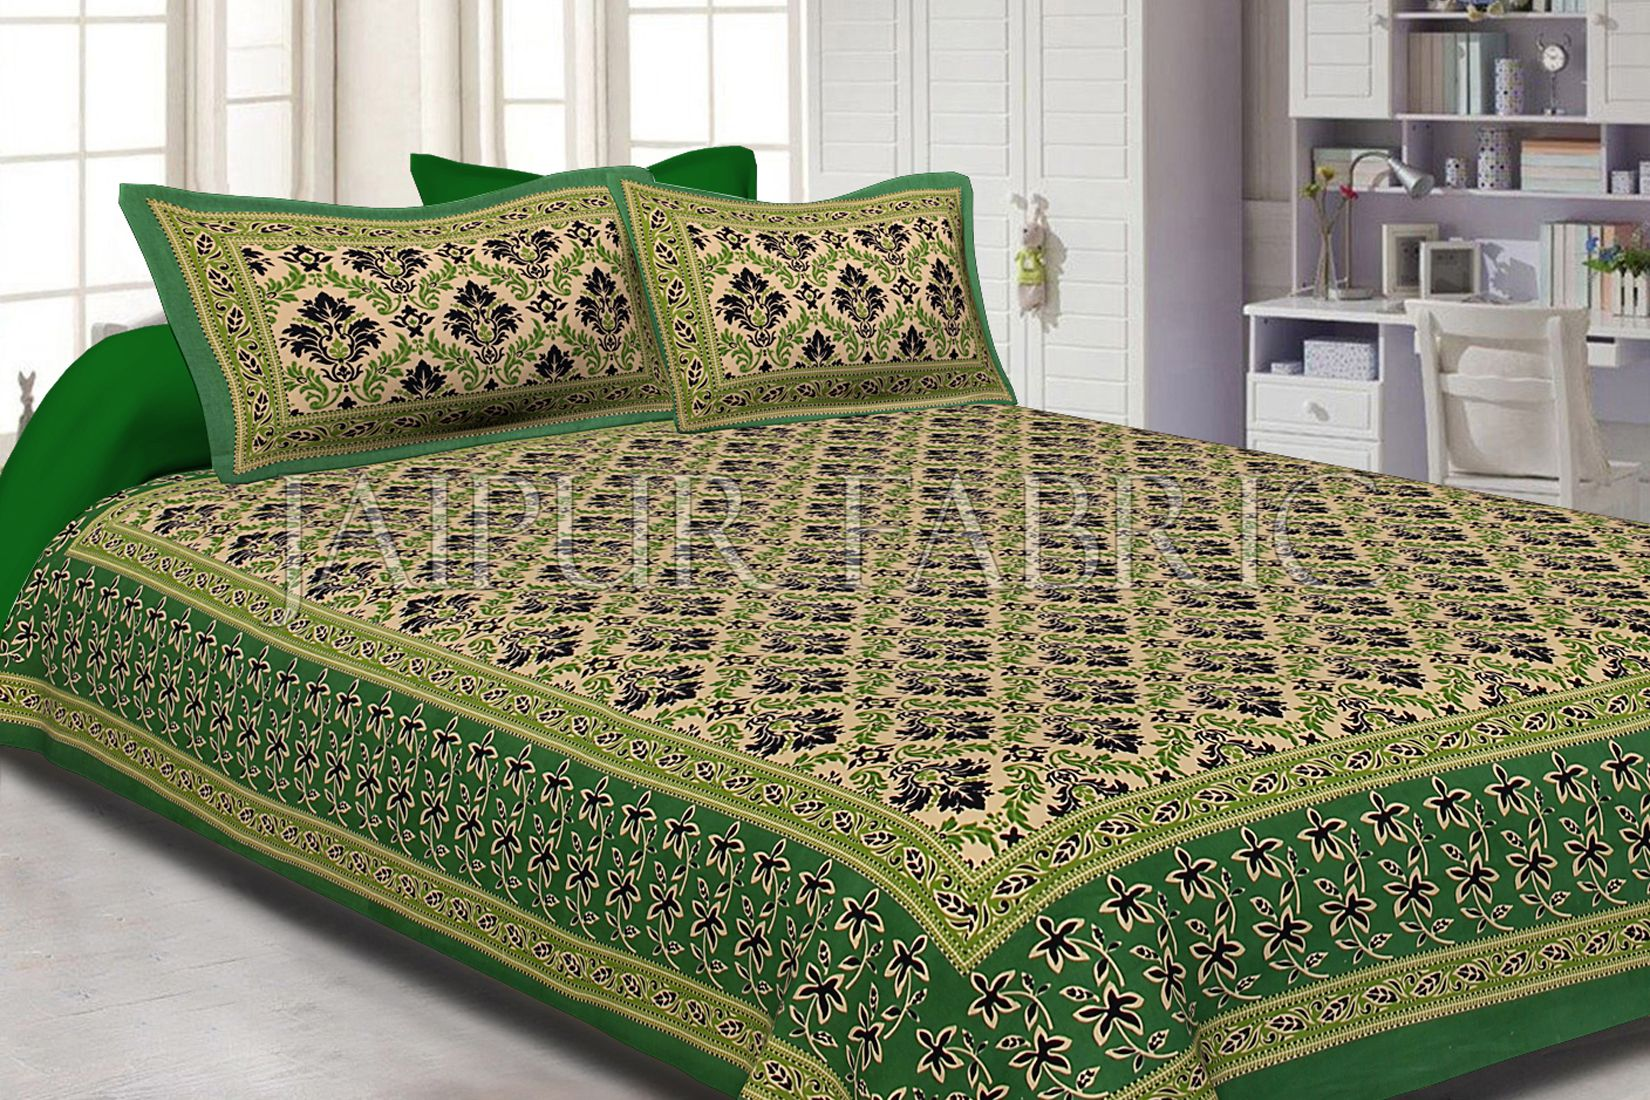 Green With Tropical Floral Pattern Cotton Double Bed Sheet